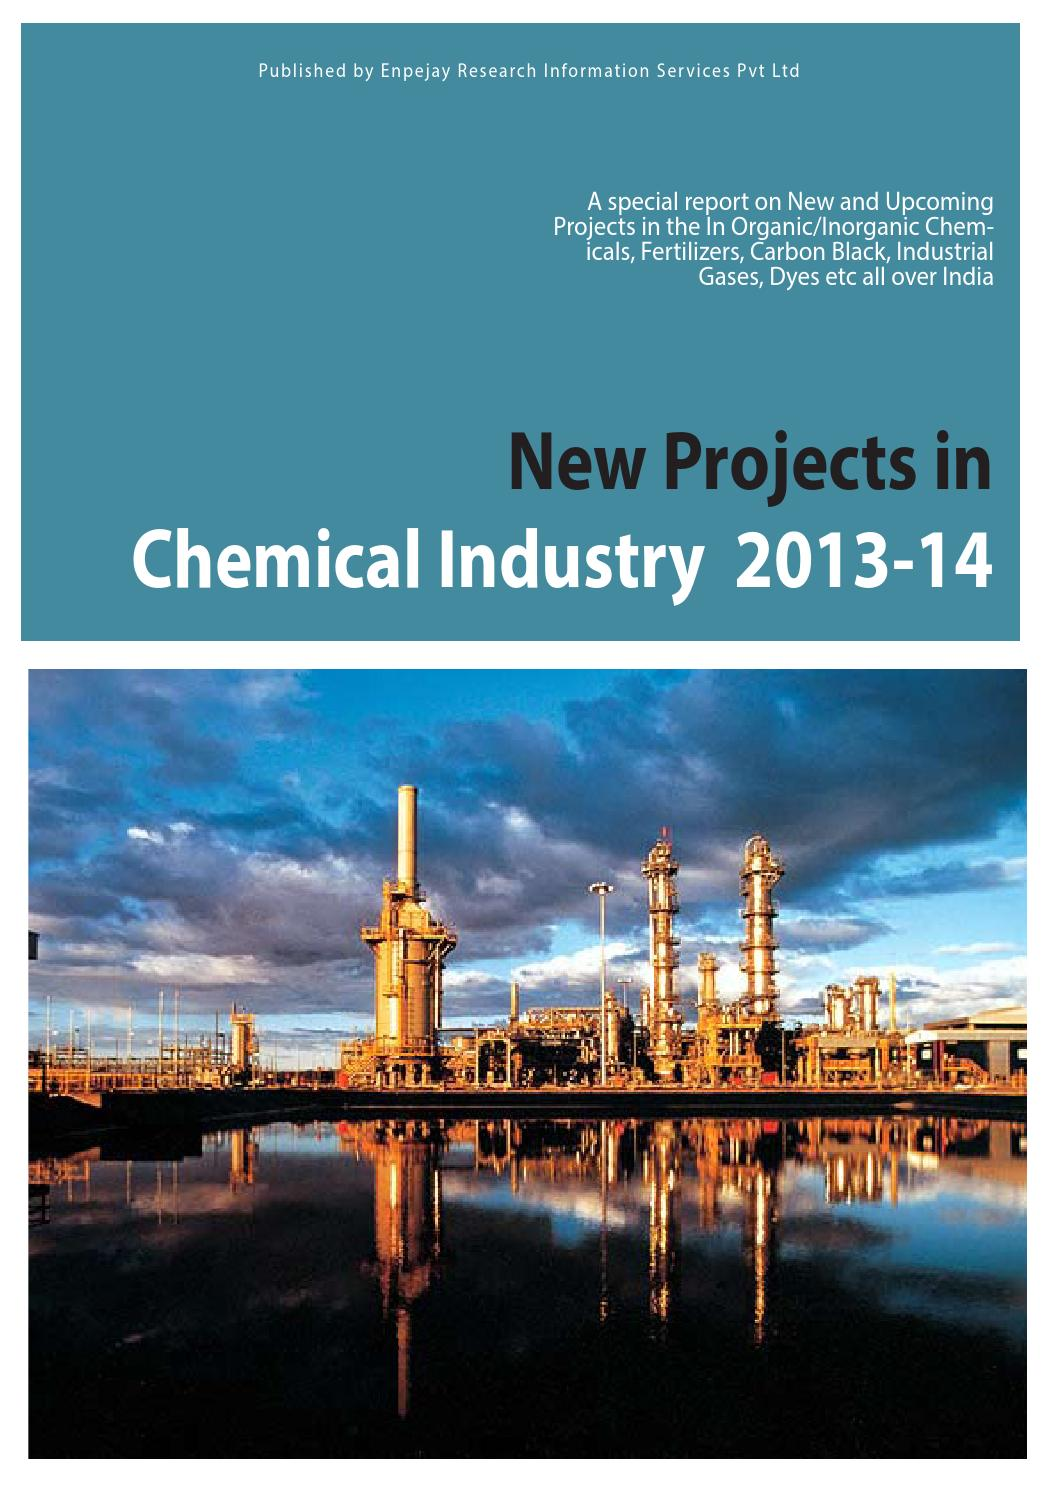 New Projects in Chemical Industry 2013 – 14 by Indscan - issuu